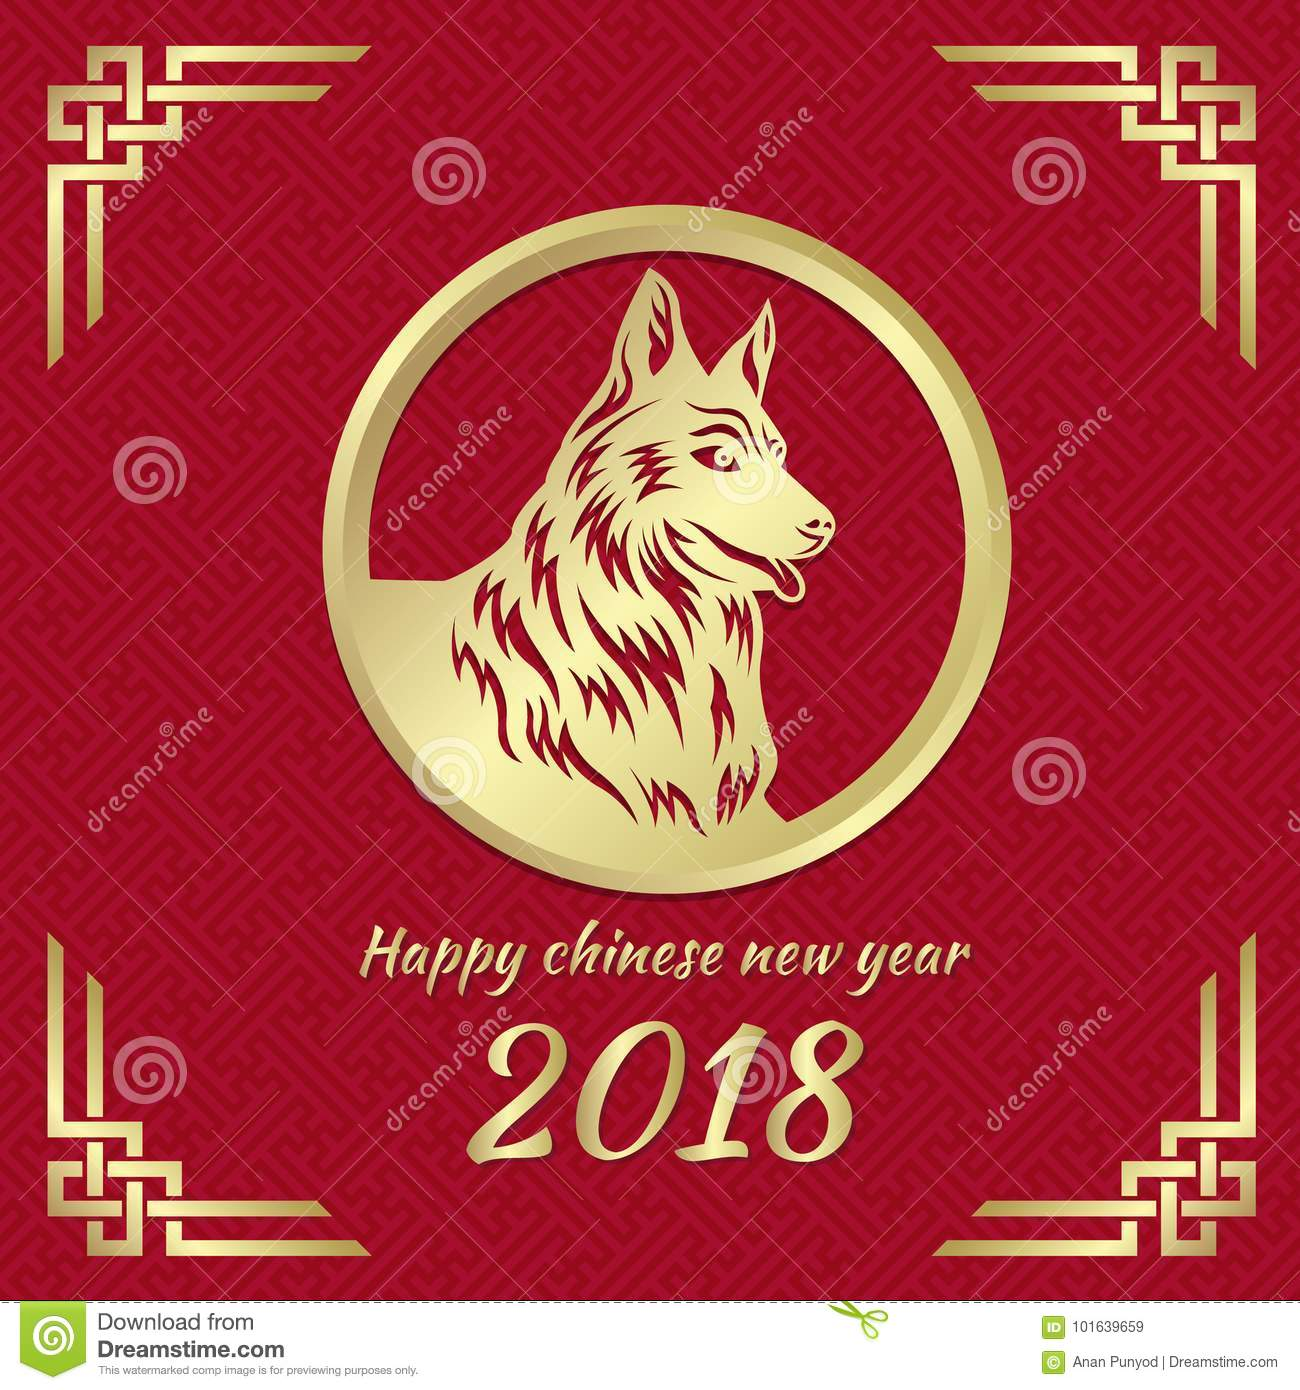 Happy Chinese new year 2018 with gold dog zodiac sign in circle on red china pattern abstract background and frame corner vector d